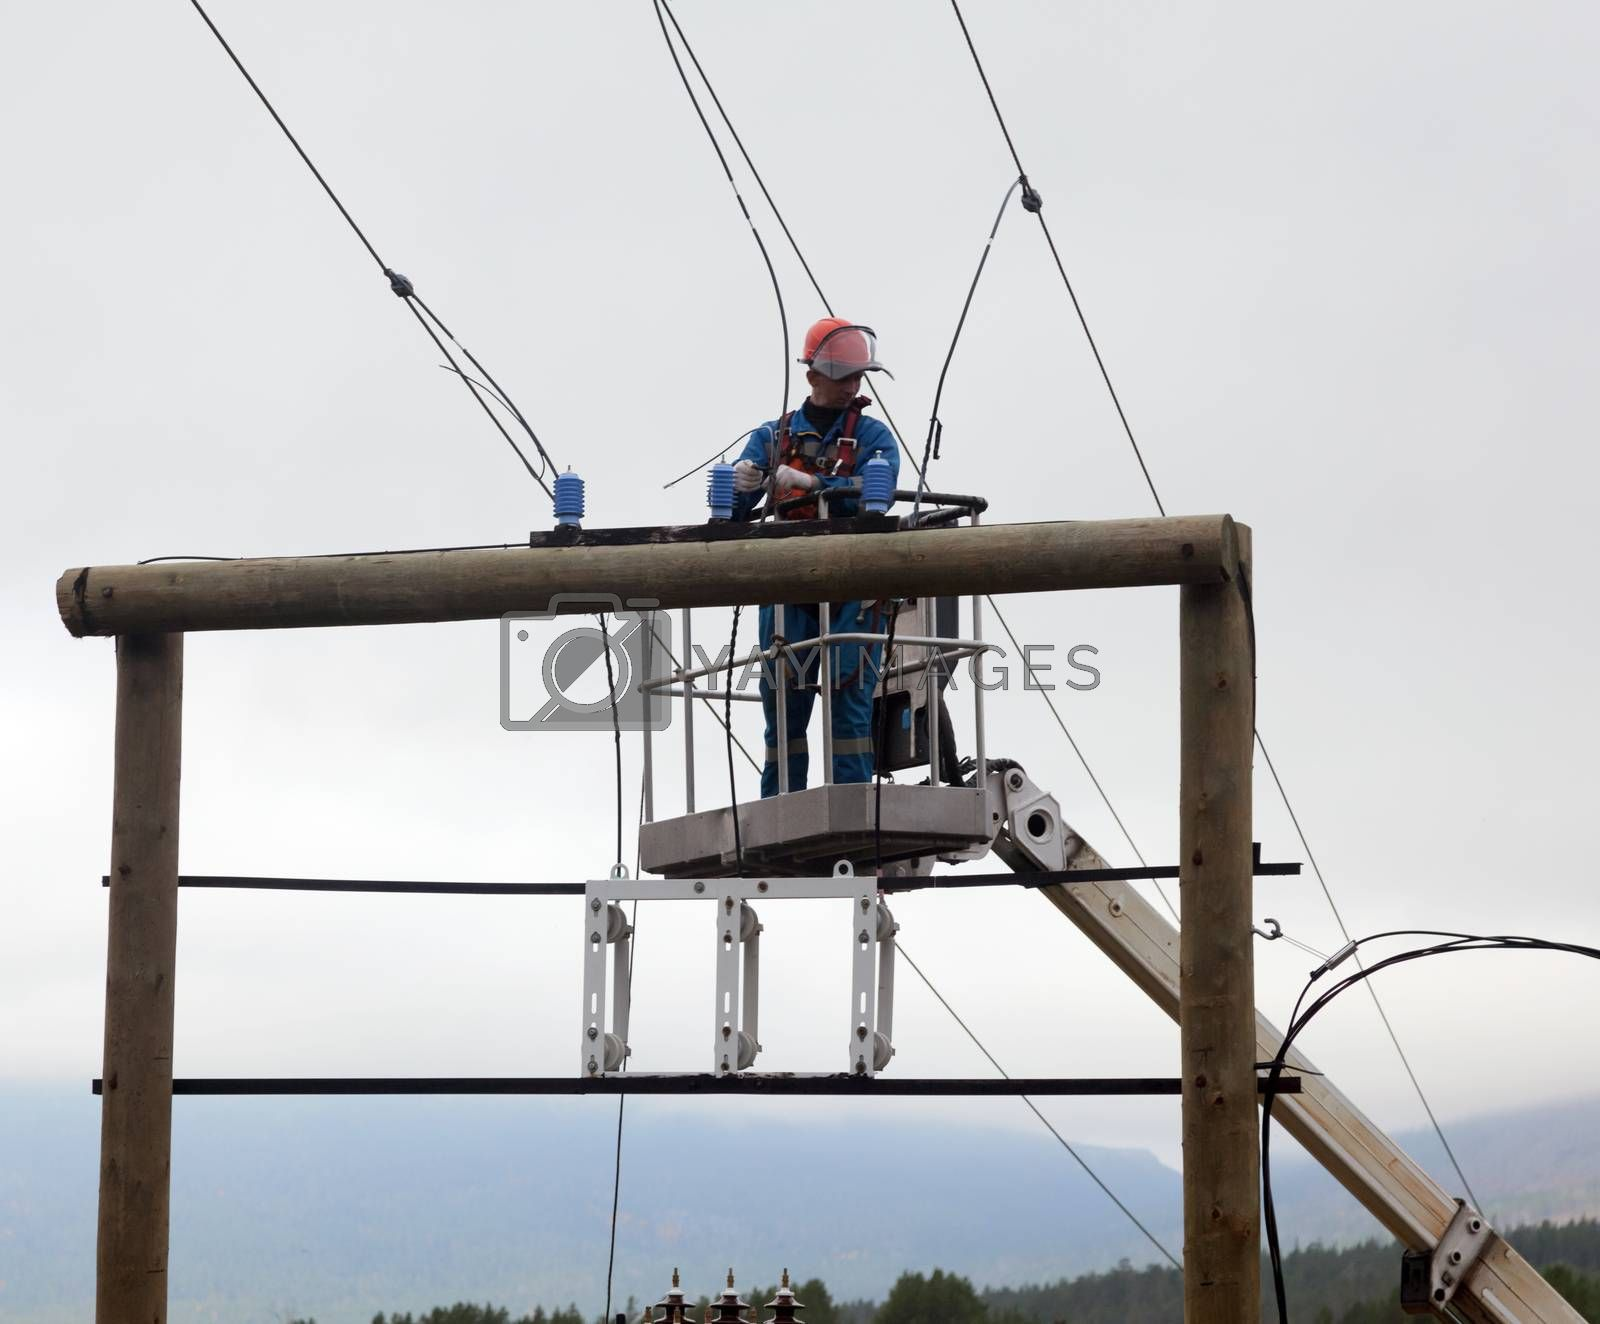 Electric is working on of transmission lines in a special lift vehicles